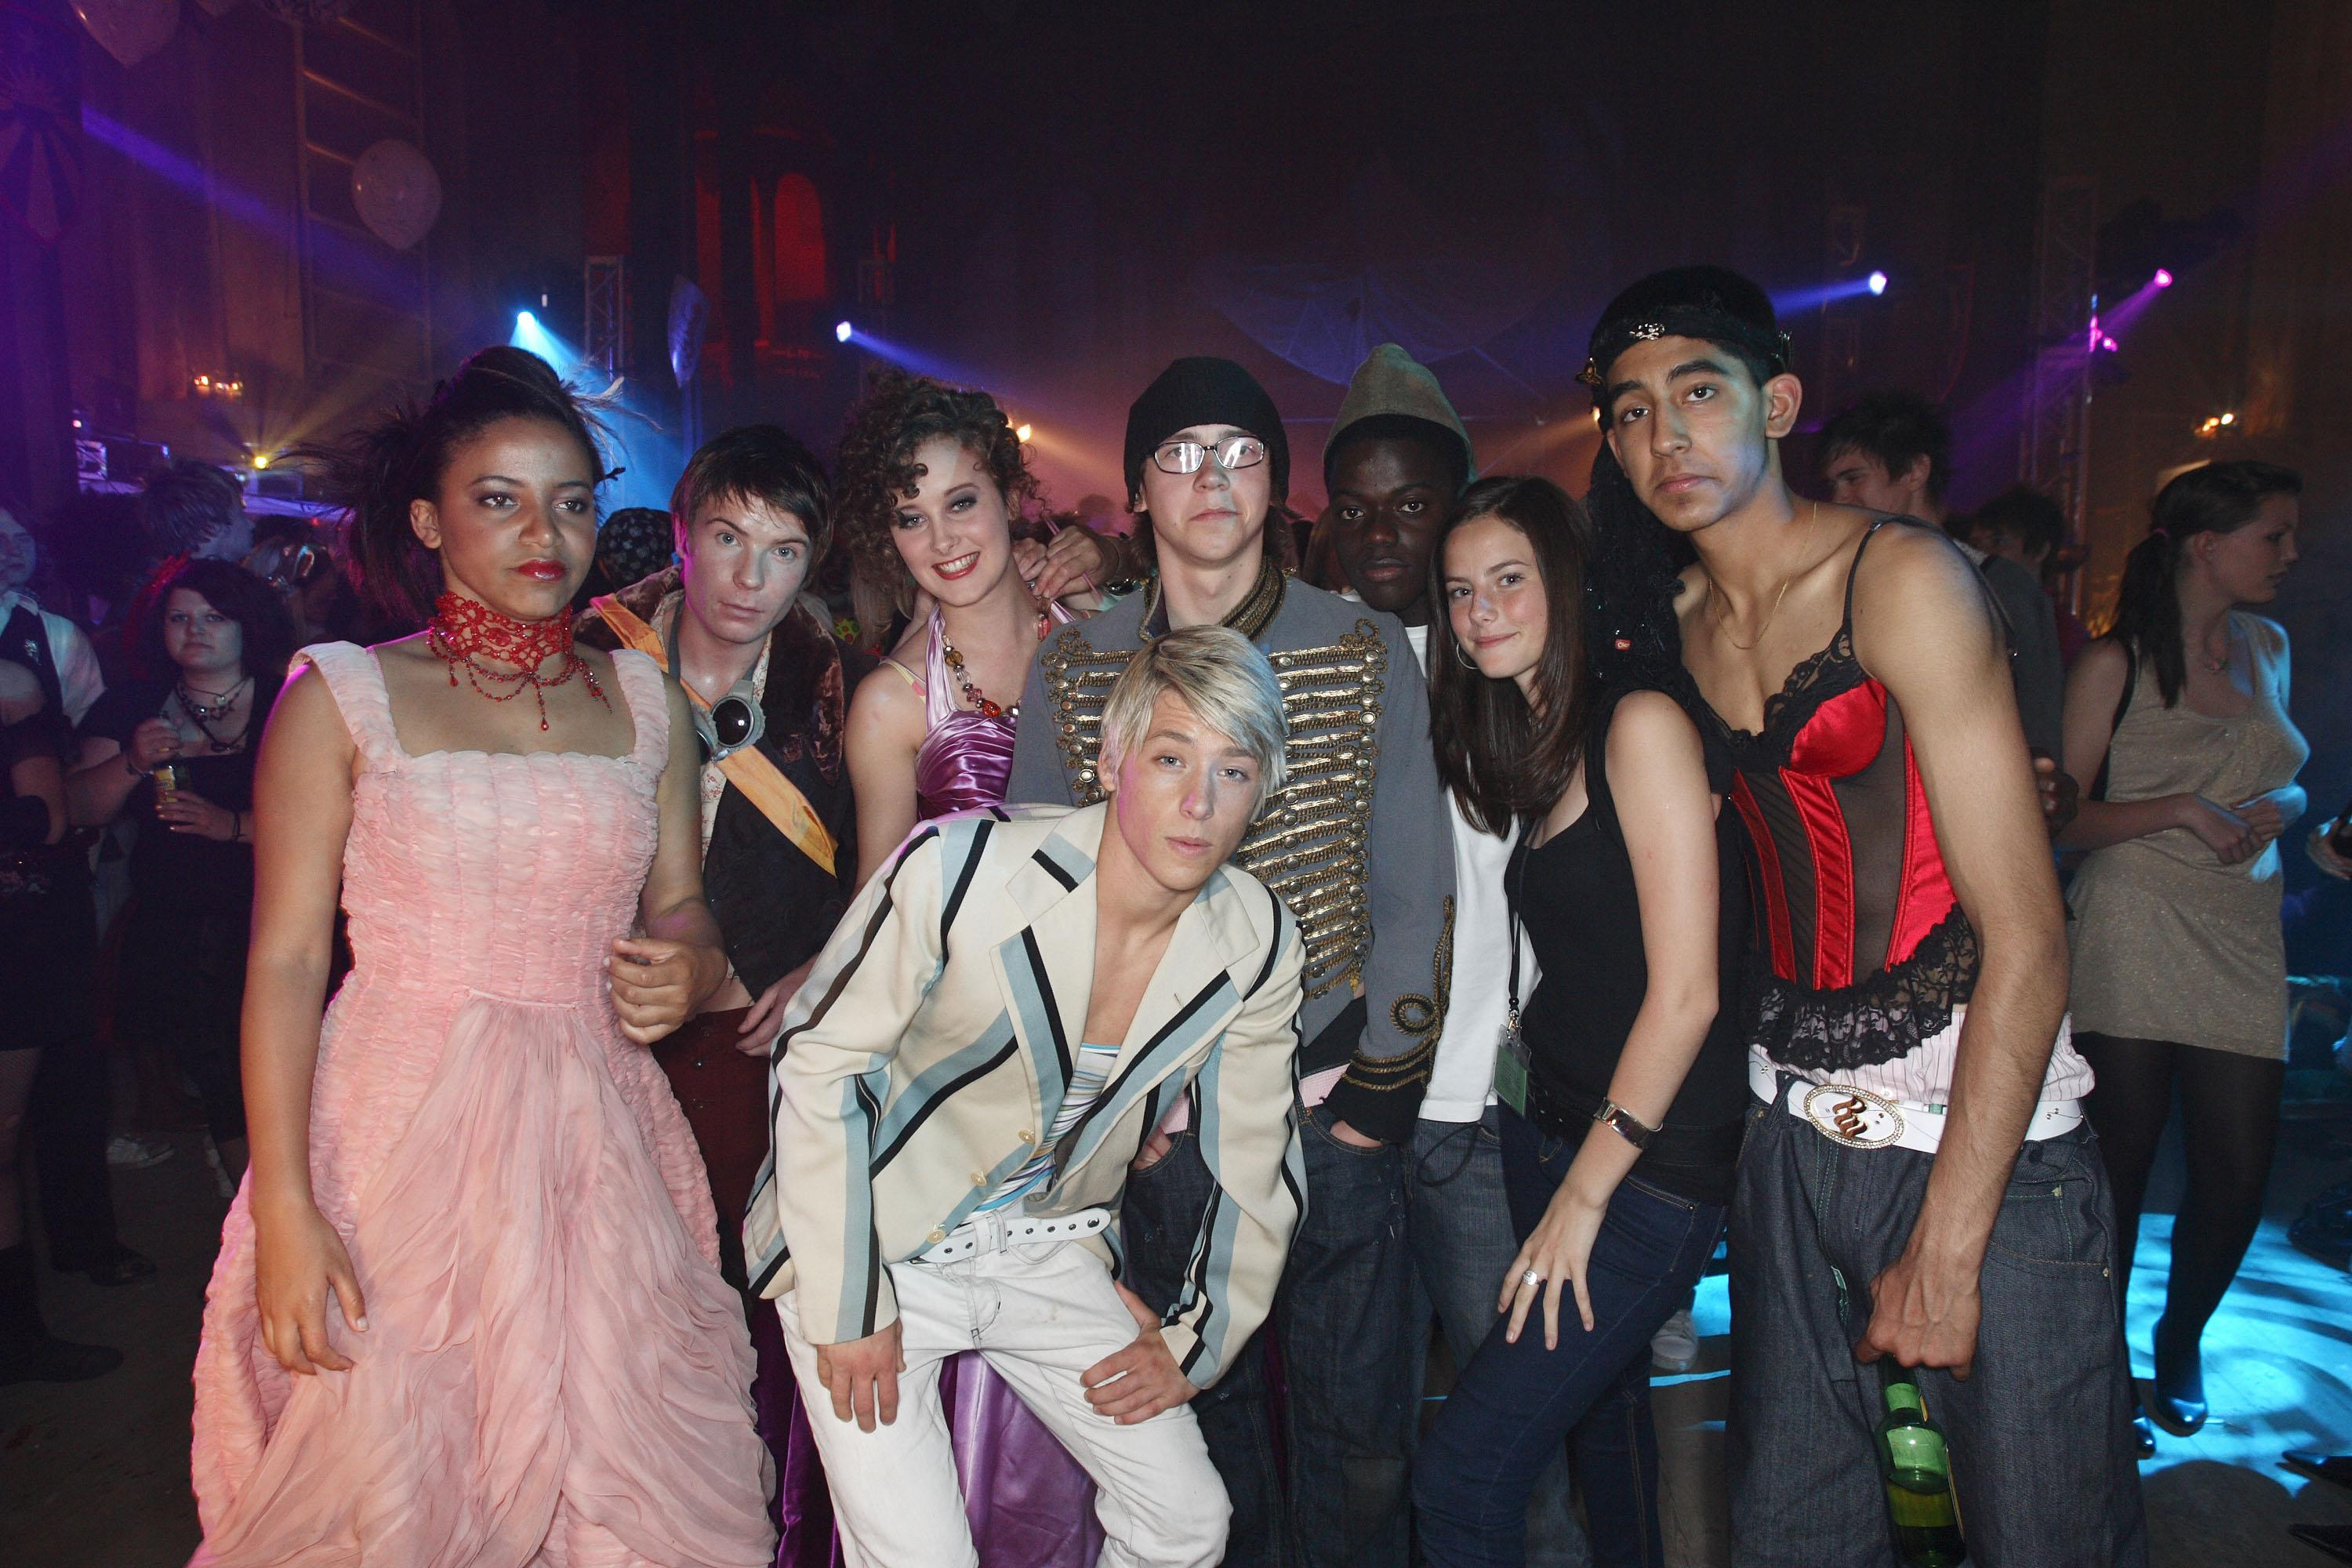 BRISTOL, UNITED KINGDOM - AUGUST 02: Larissa Wilson, Joseph Dempsie, April Pearson, Mitch Hewer, Mike Bailey, Kaya Scodelario and Dev Patel attend the Channel 4/ E4 party for a one-off Skins special on August 2, 2007 in Bristol (Gloucestershire), England. (Photo by Mike Marsland/WireImage)